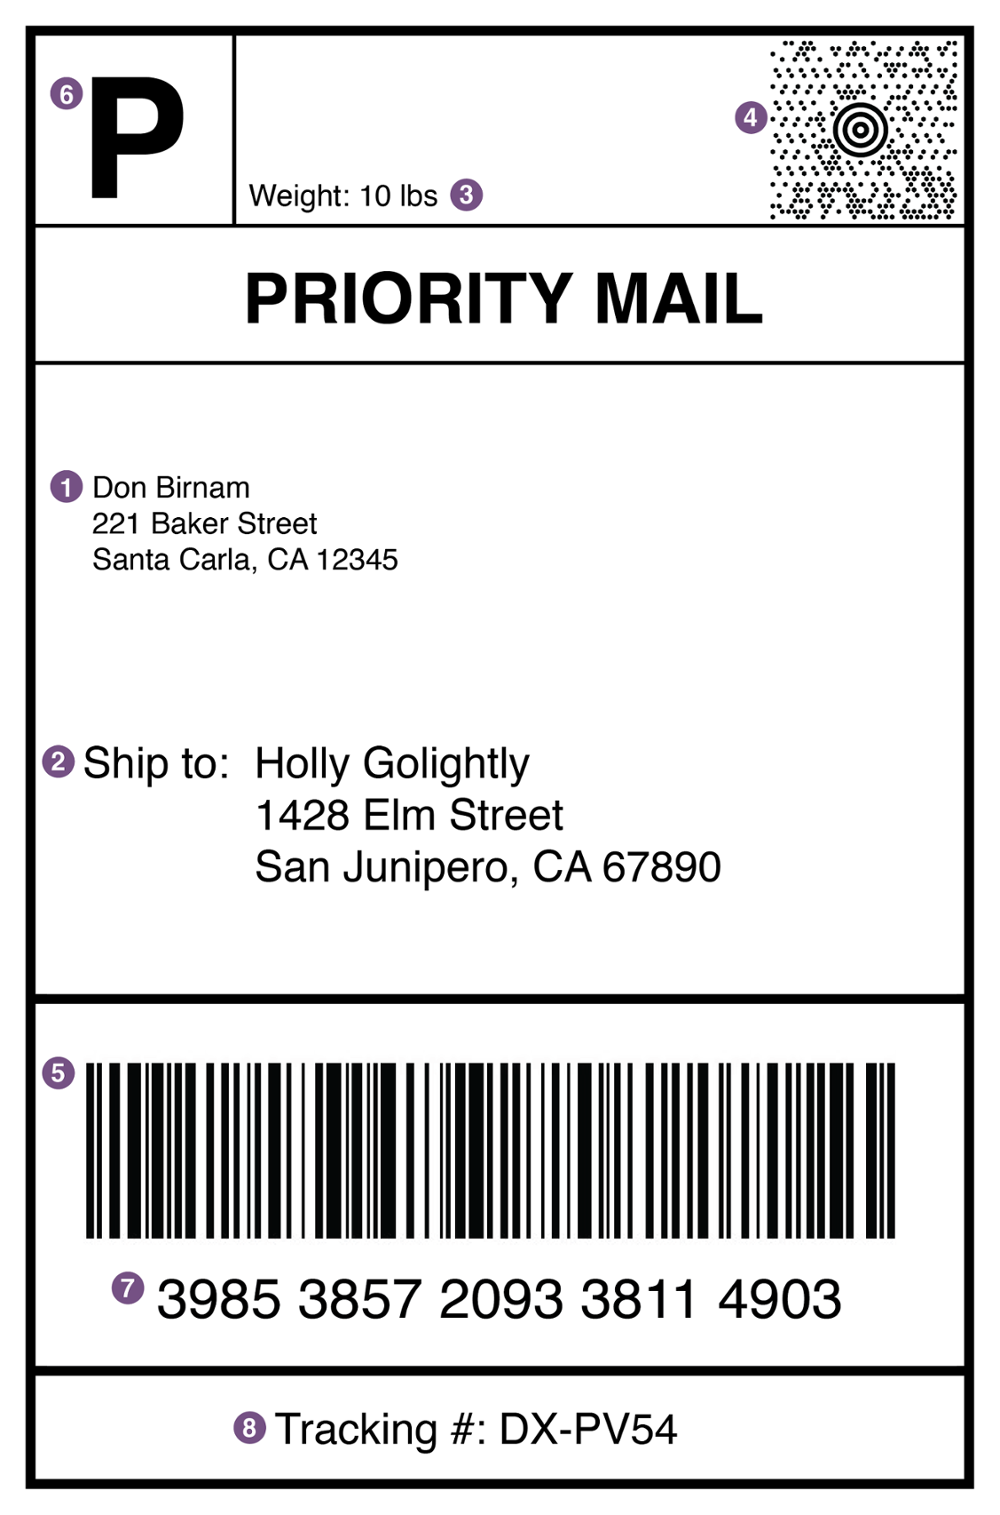 TFL_012_MISC - Shipping Label Example-1